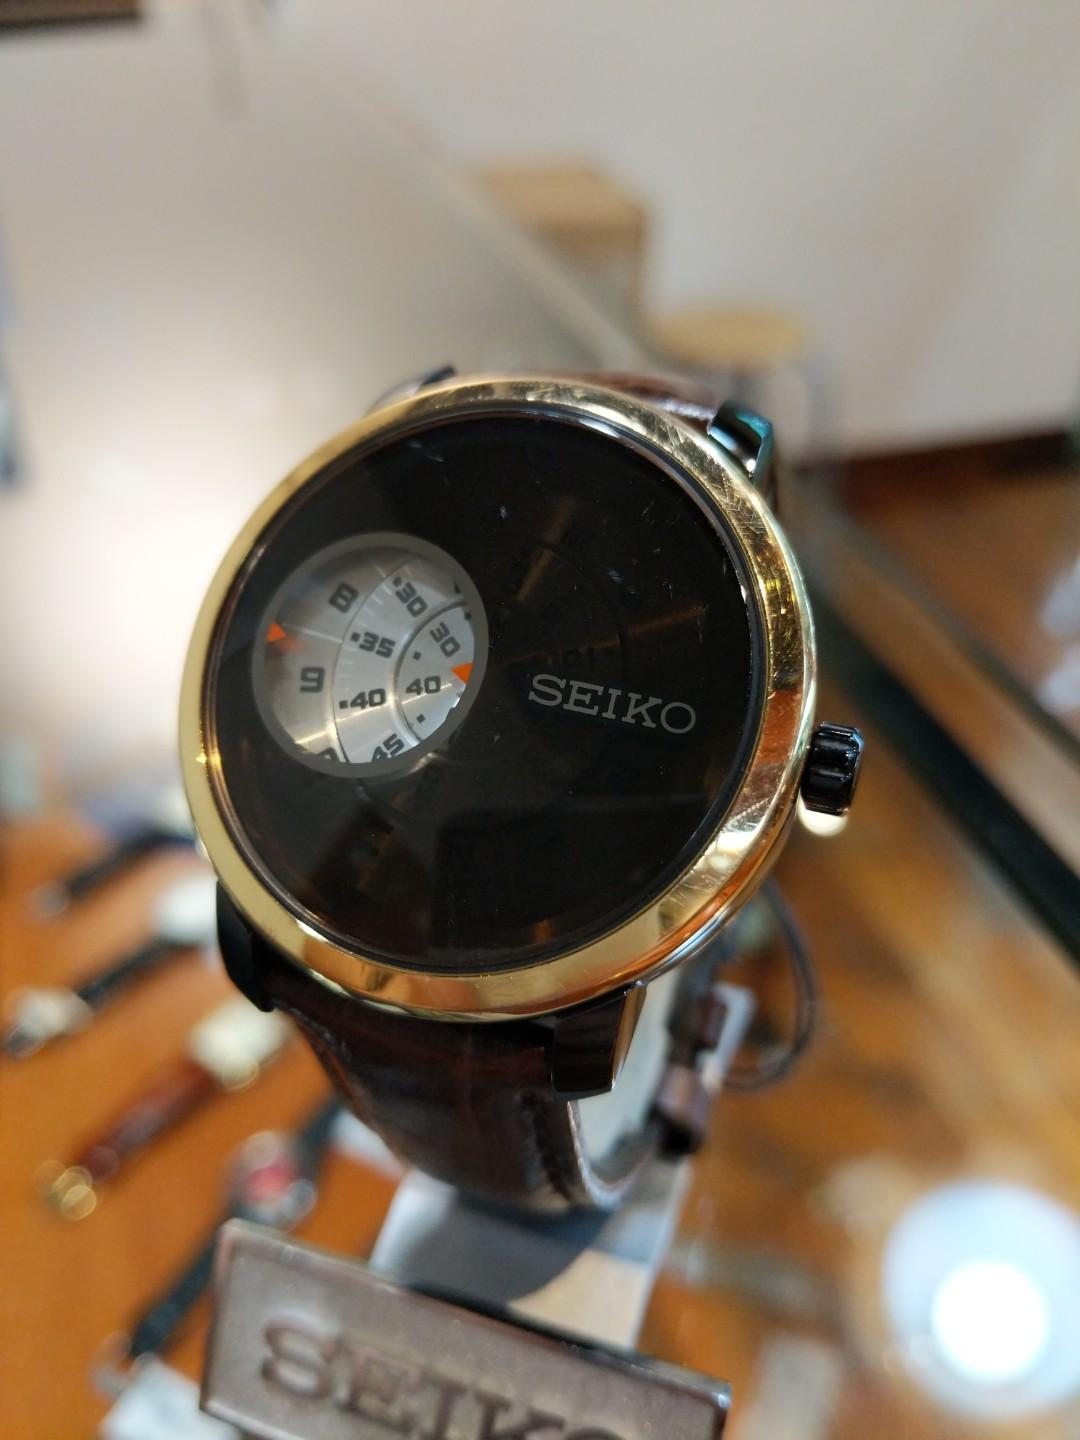 極品 Seiko disc hamburger 中古 精工 SCBS019 限量100隻